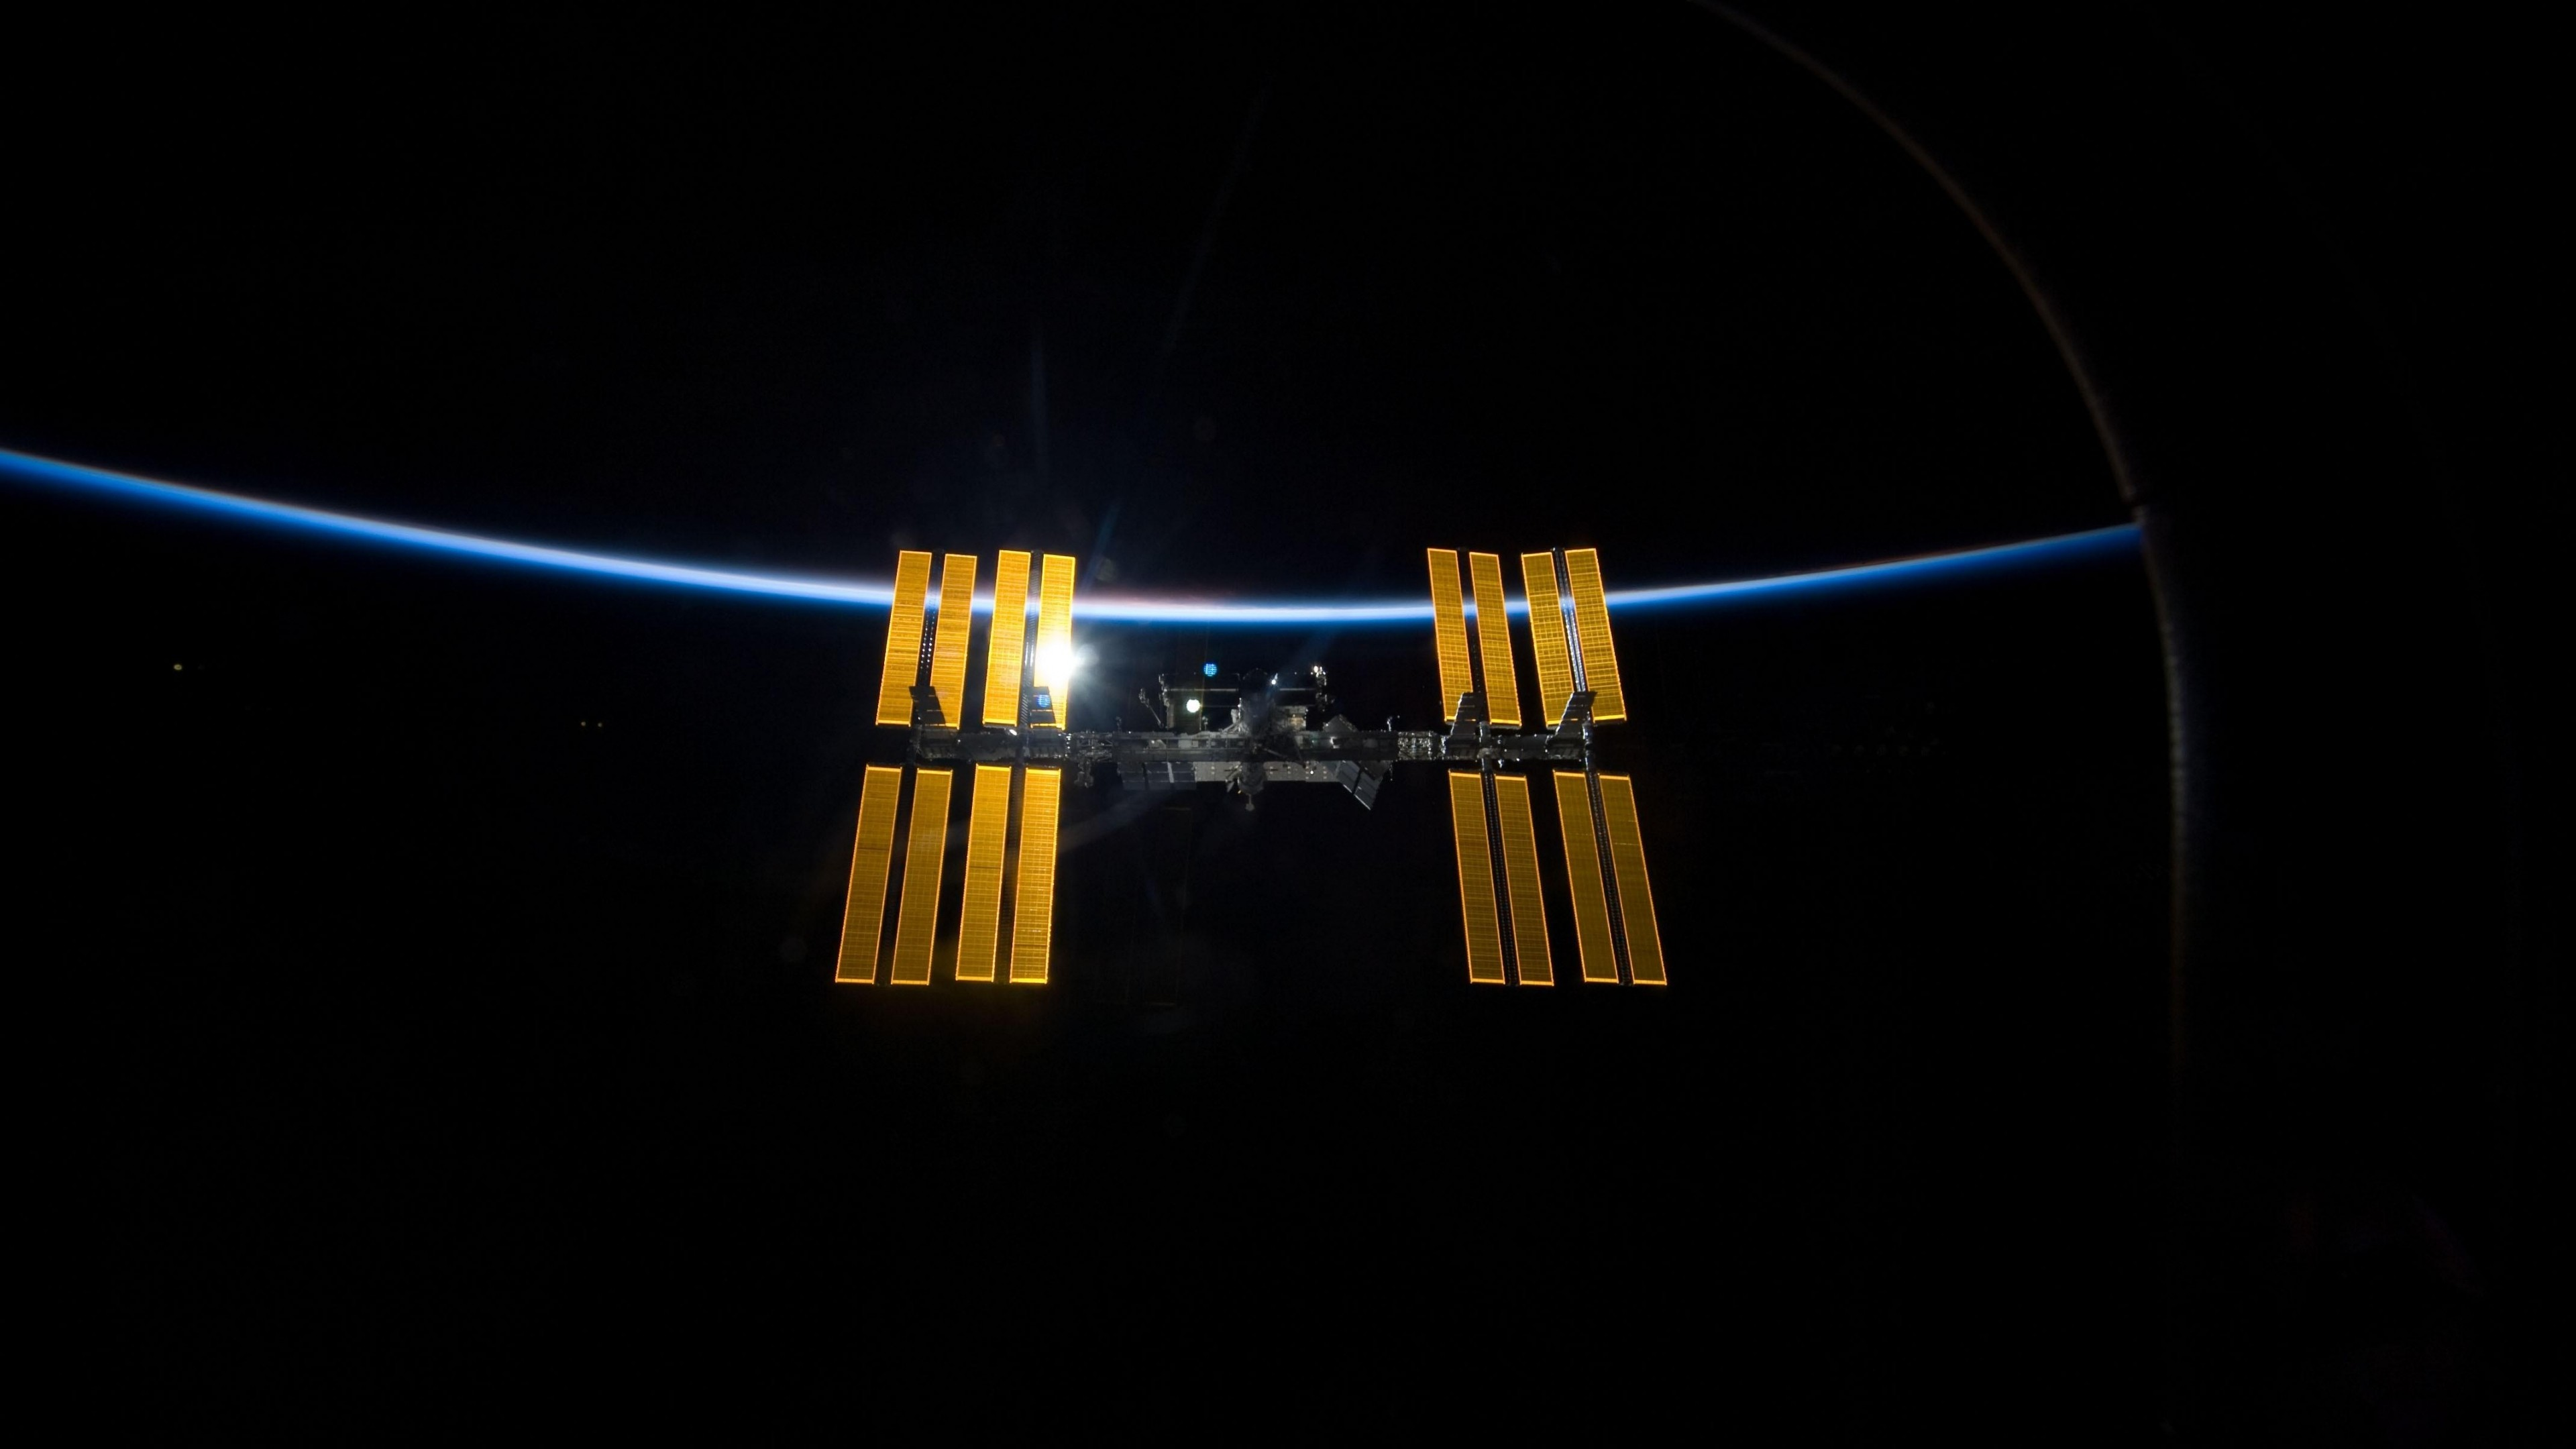 3840x2160  Wallpaper space, station iss, world, laboratory, light